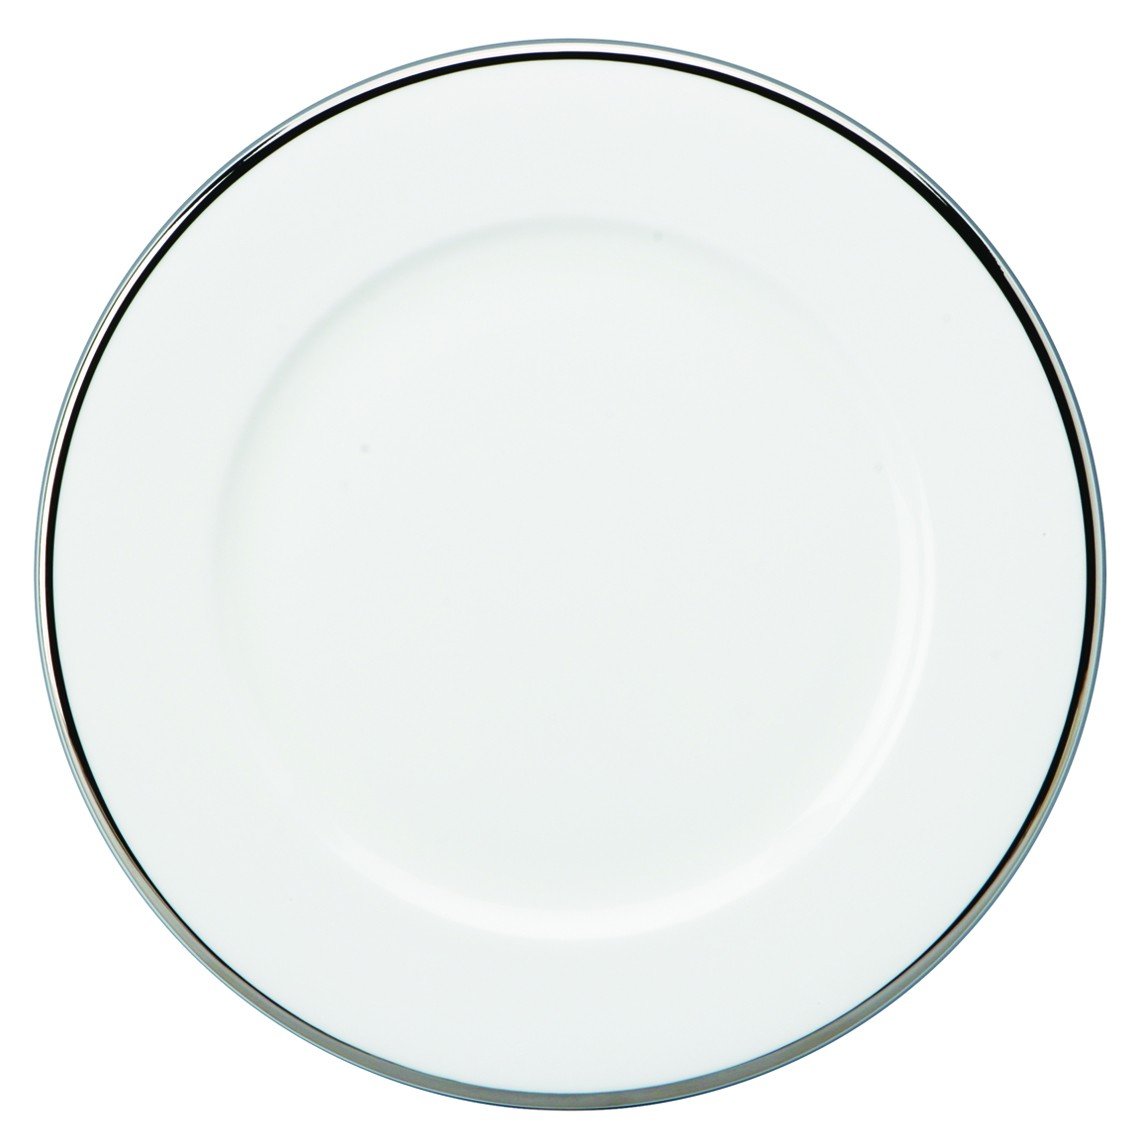 Prouna Comet Platinum Round Platter / Charger Plate